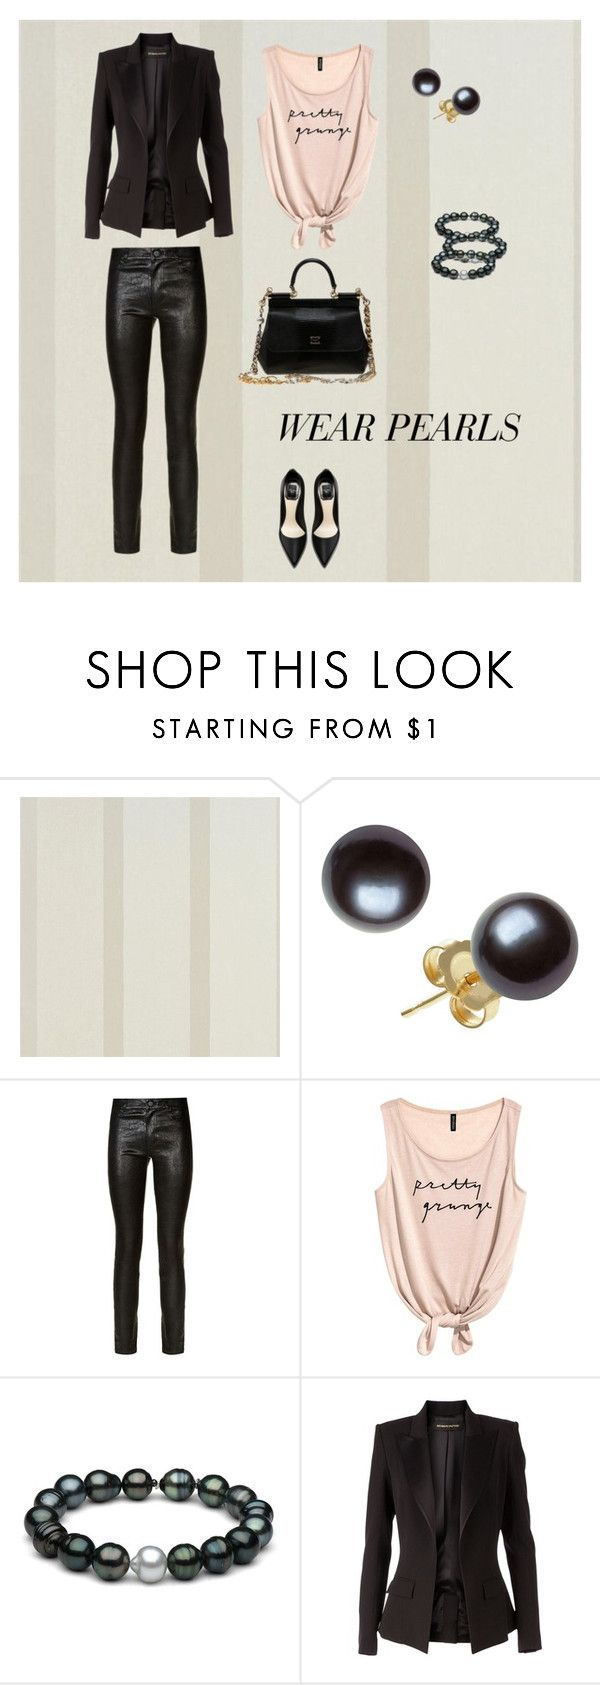 """PEARLS"" by natyapshopper on Polyvore featuring moda, Paige Denim, Alexandre Vauthier y Dolce&Gabbana"